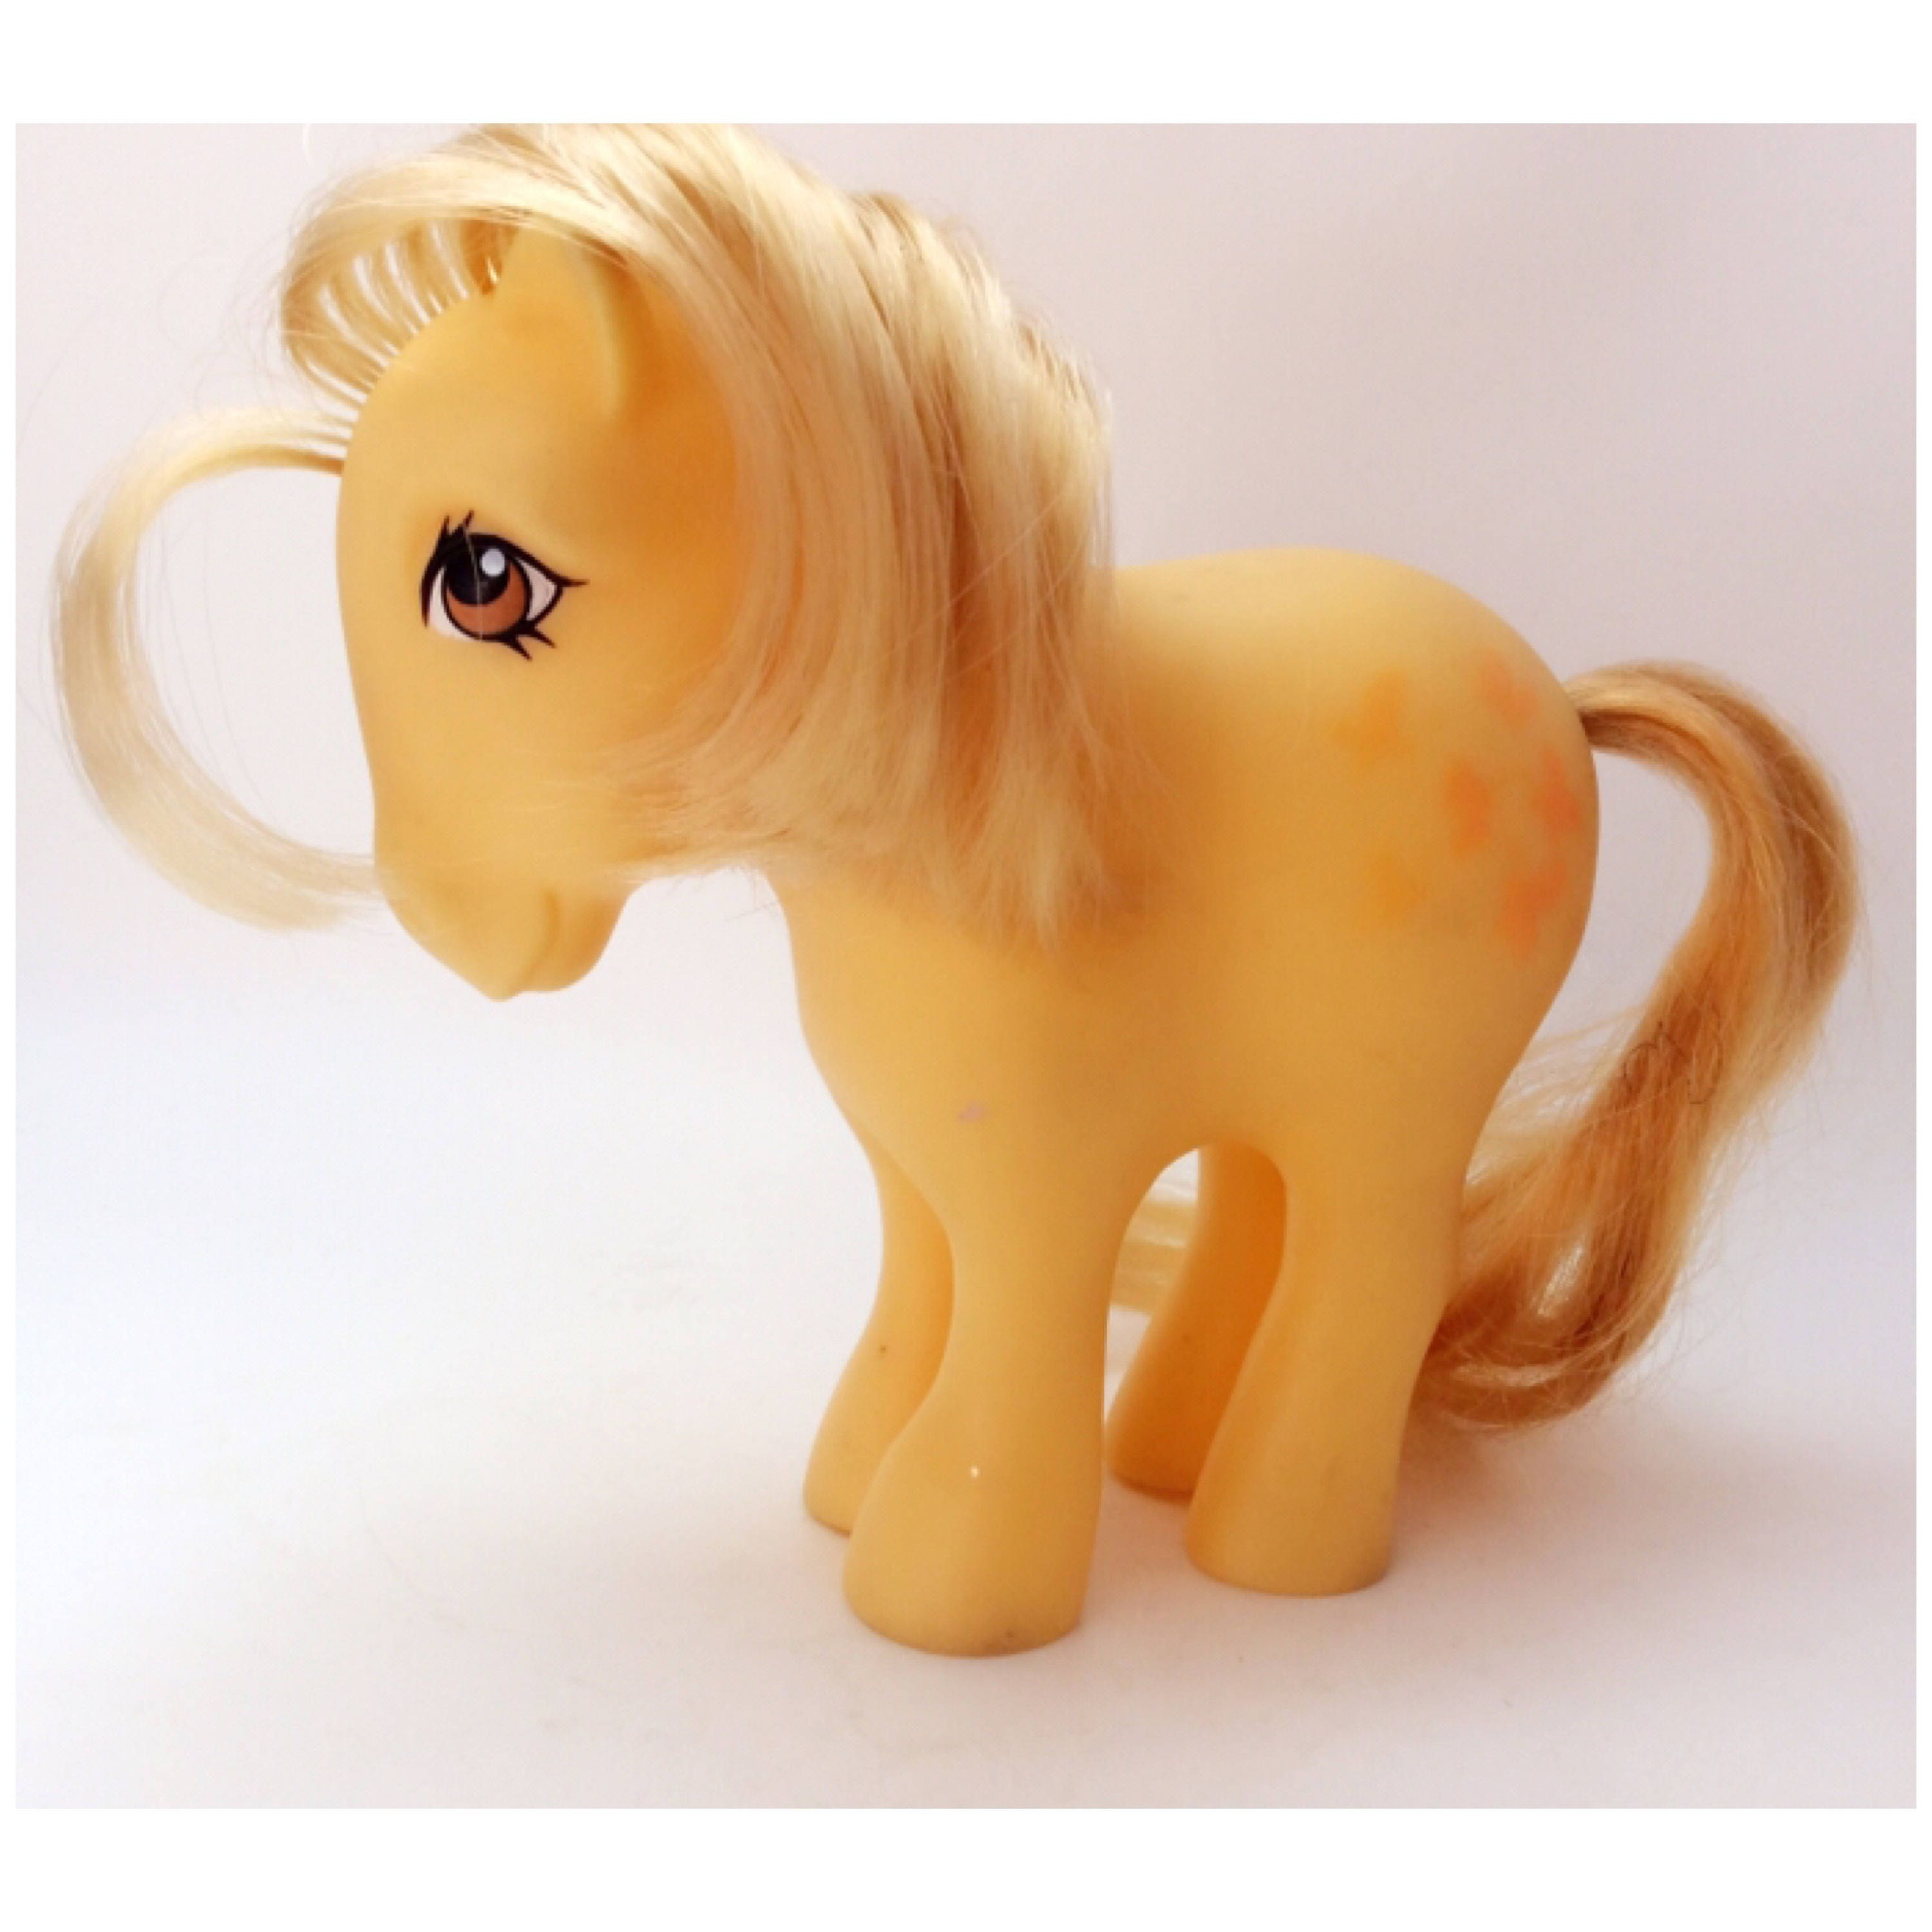 Vintage Hasbro 1980s My Little Pony G1 Butterscotch Pony Pretty MLP Toy Collectible